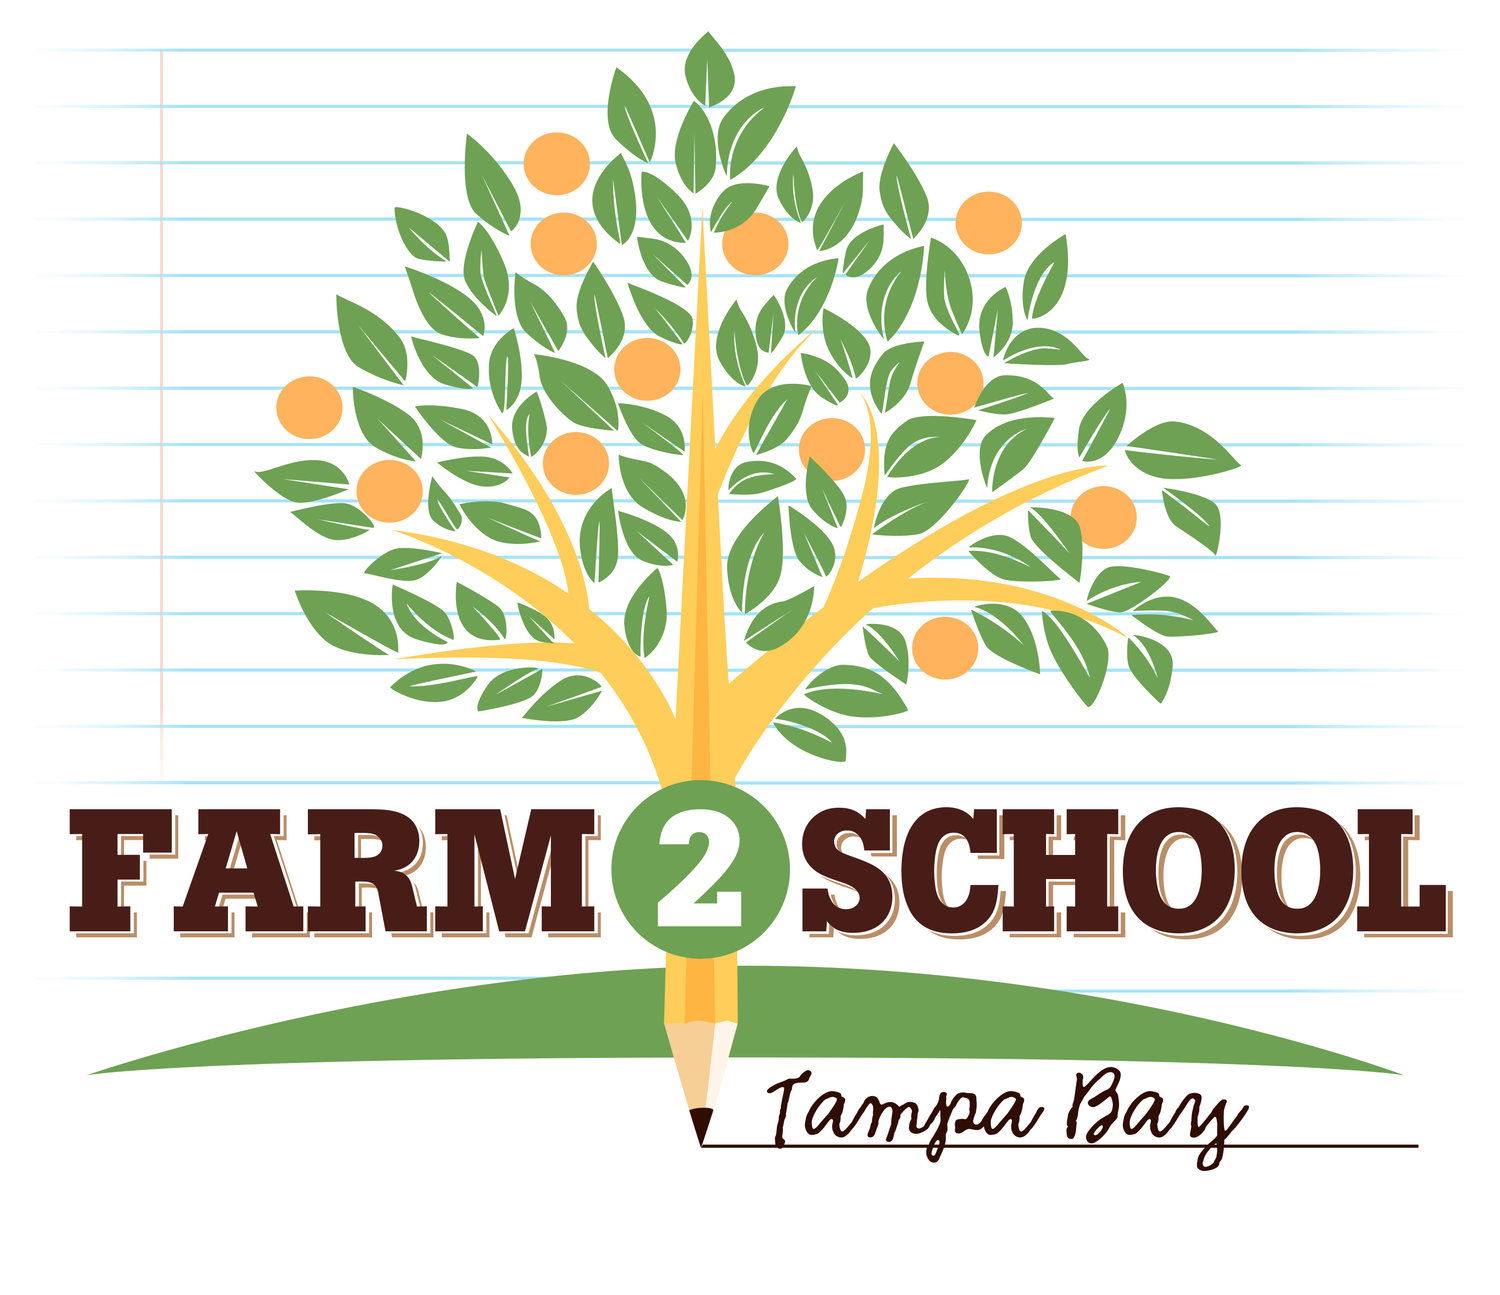 Tampa Bay Farm 2 School